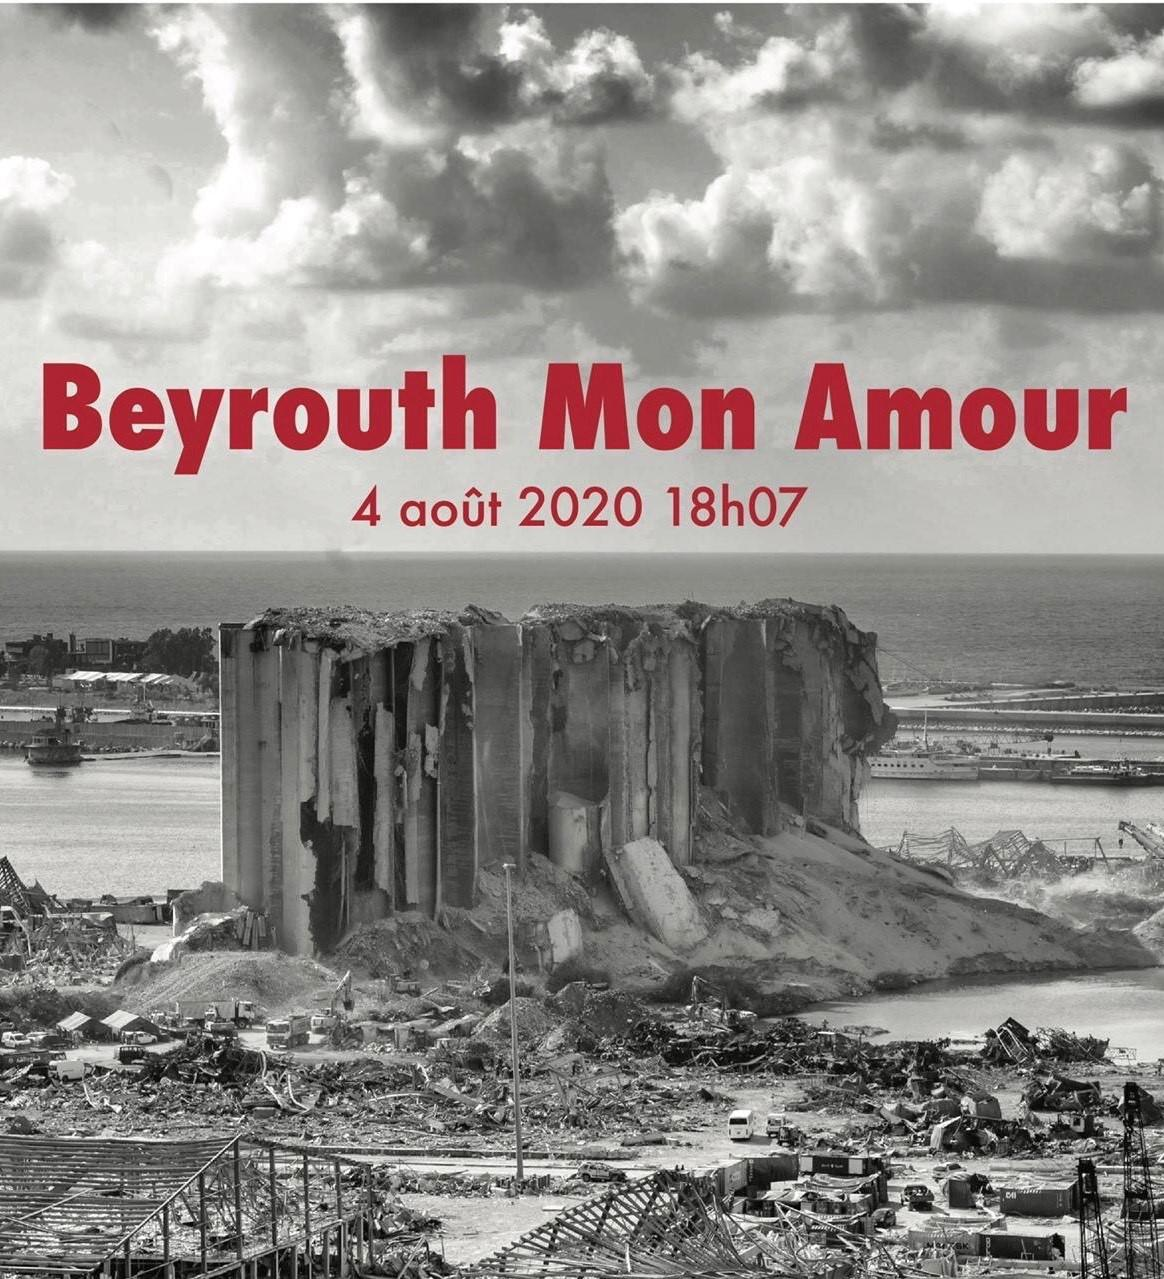 Beyrouth mon amour